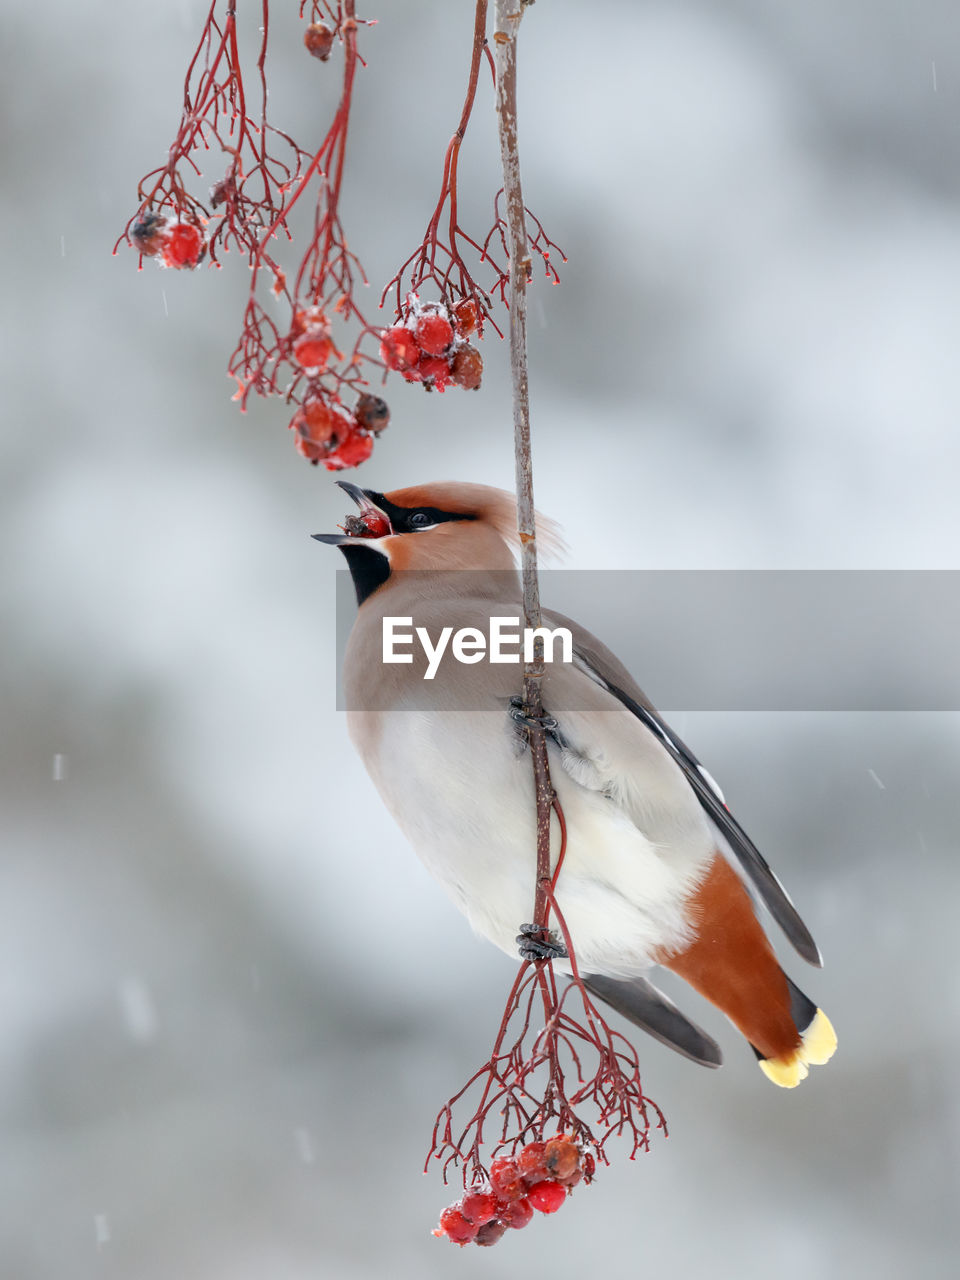 bird, red, one animal, focus on foreground, nature, animal themes, no people, day, animals in the wild, animal wildlife, beauty in nature, outdoors, perching, tree, branch, close-up, sky